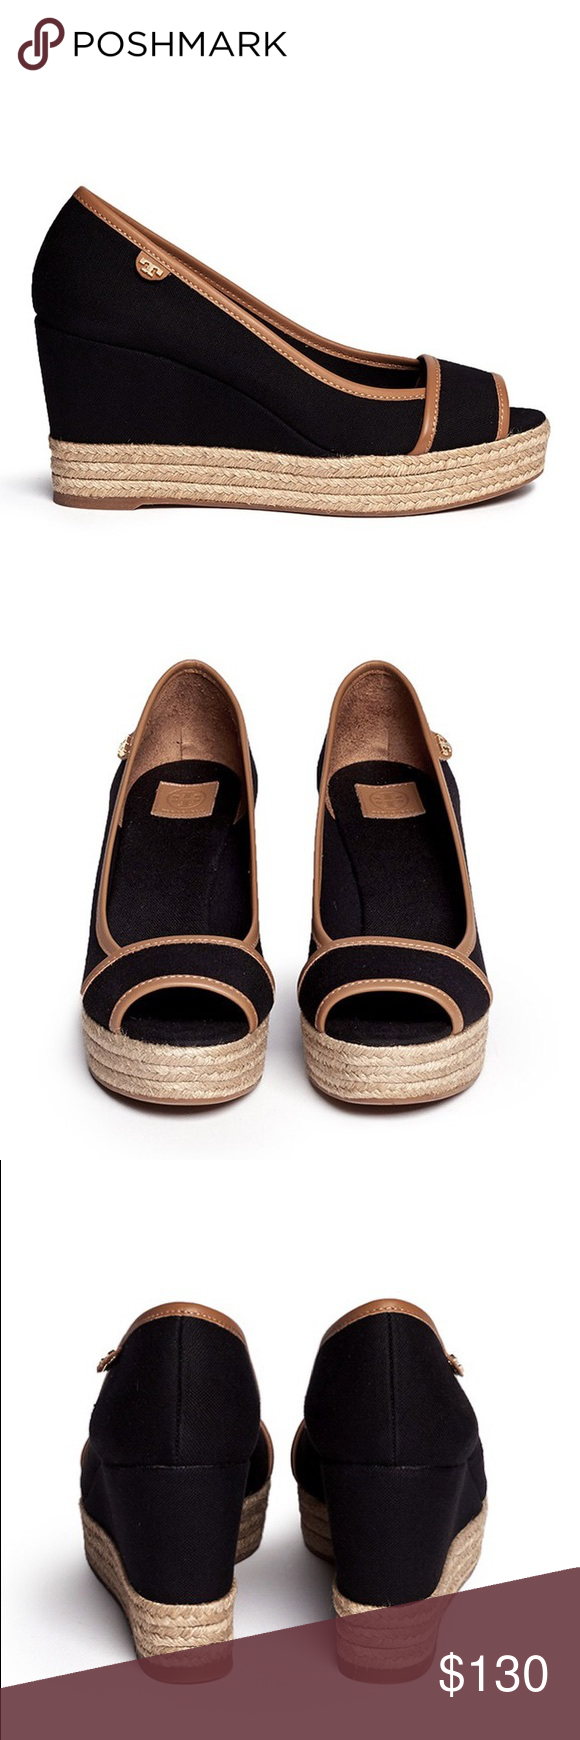 24326be5a408 Tory Burch Majorca Canvas Espadrille Wedge Sandals Elevating both your  style   height with a canvas